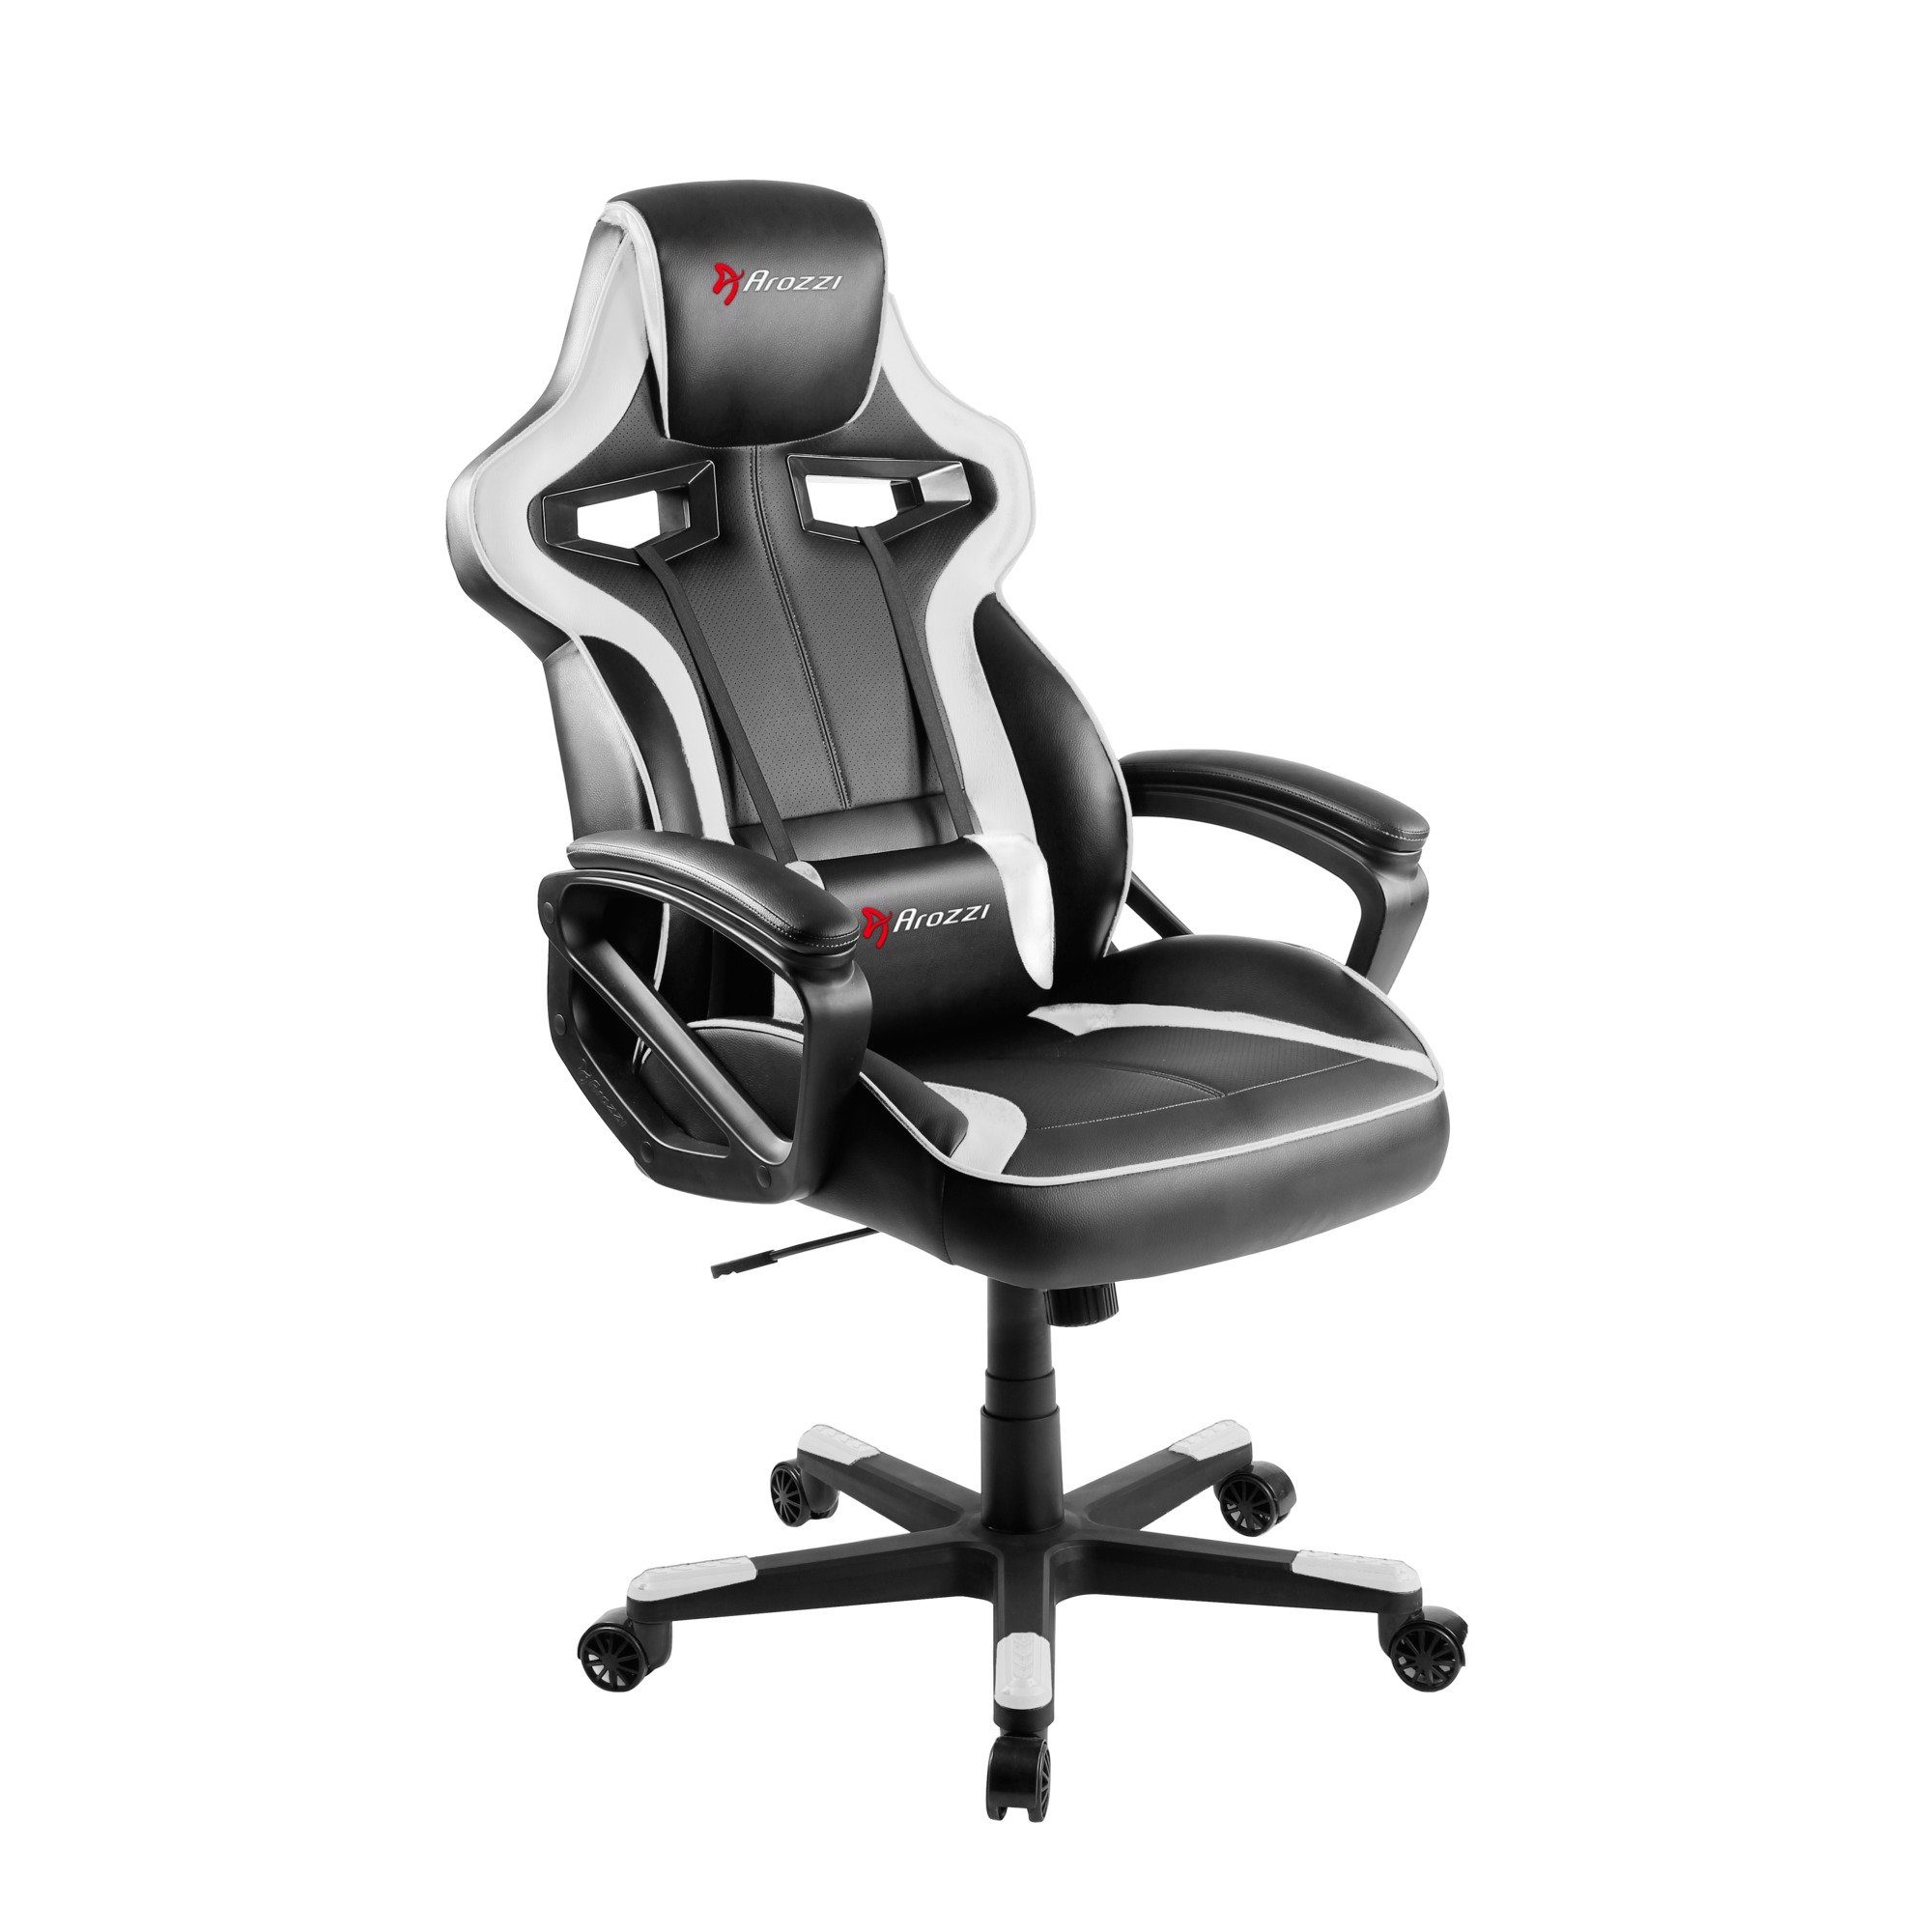 Arozzi Spielsitz »Milano Gaming Chair«